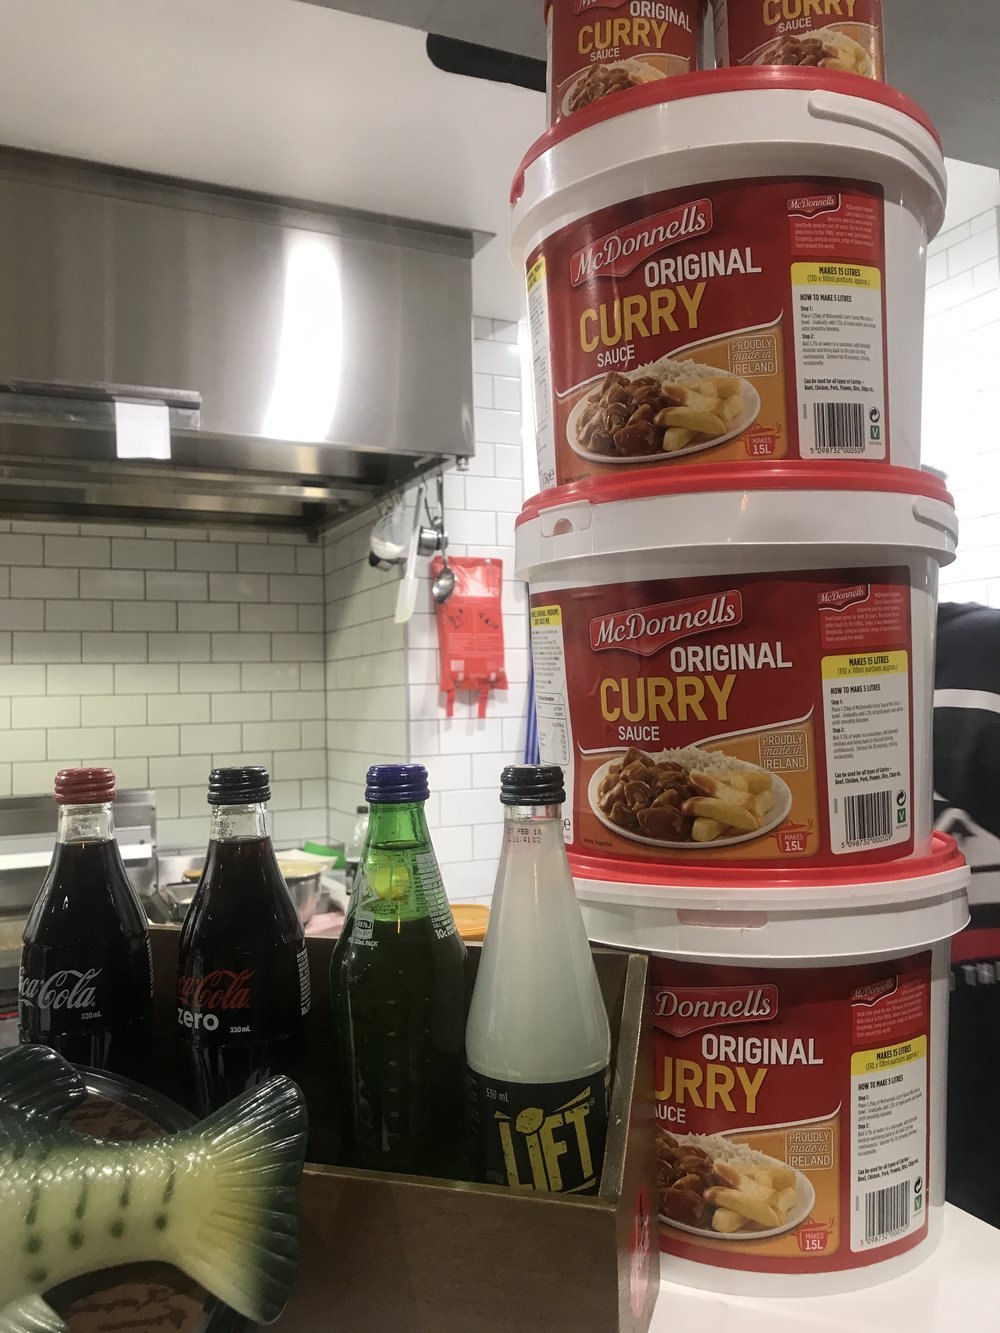 McDonnell's Original Curry Sauce